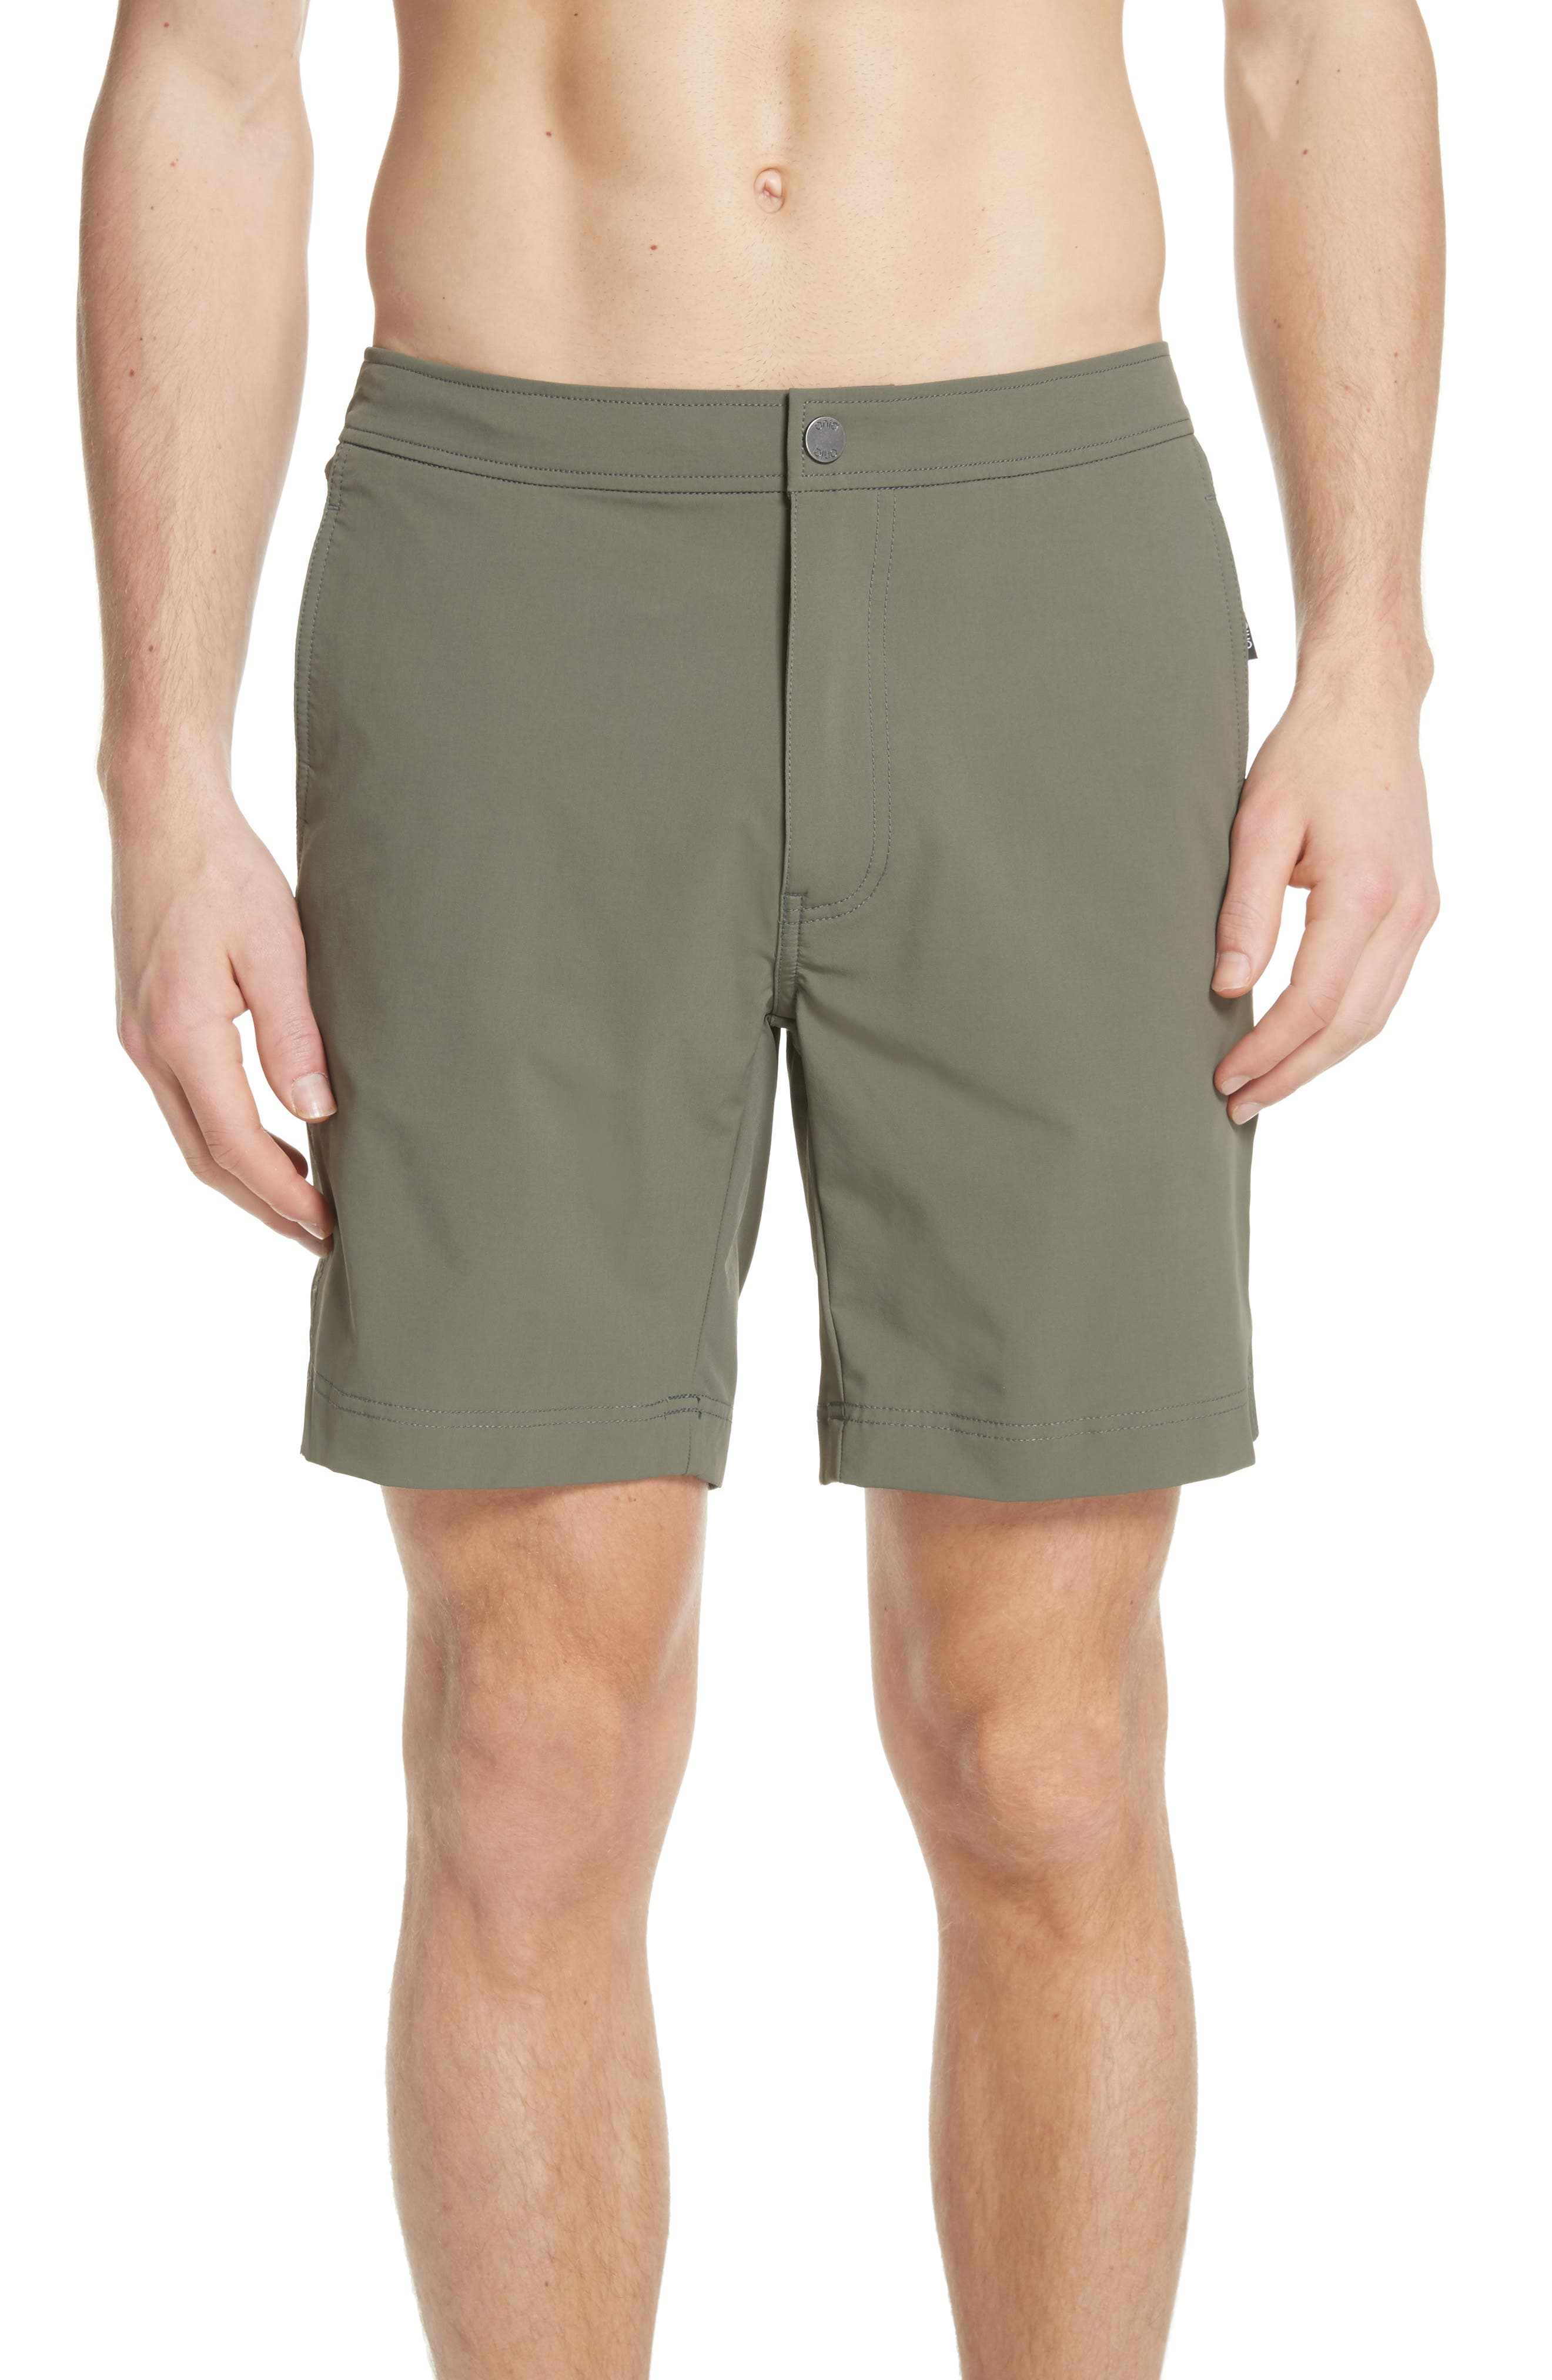 Calder Swim Trunks,                             Main thumbnail 1, color,                             DEEP SAGE